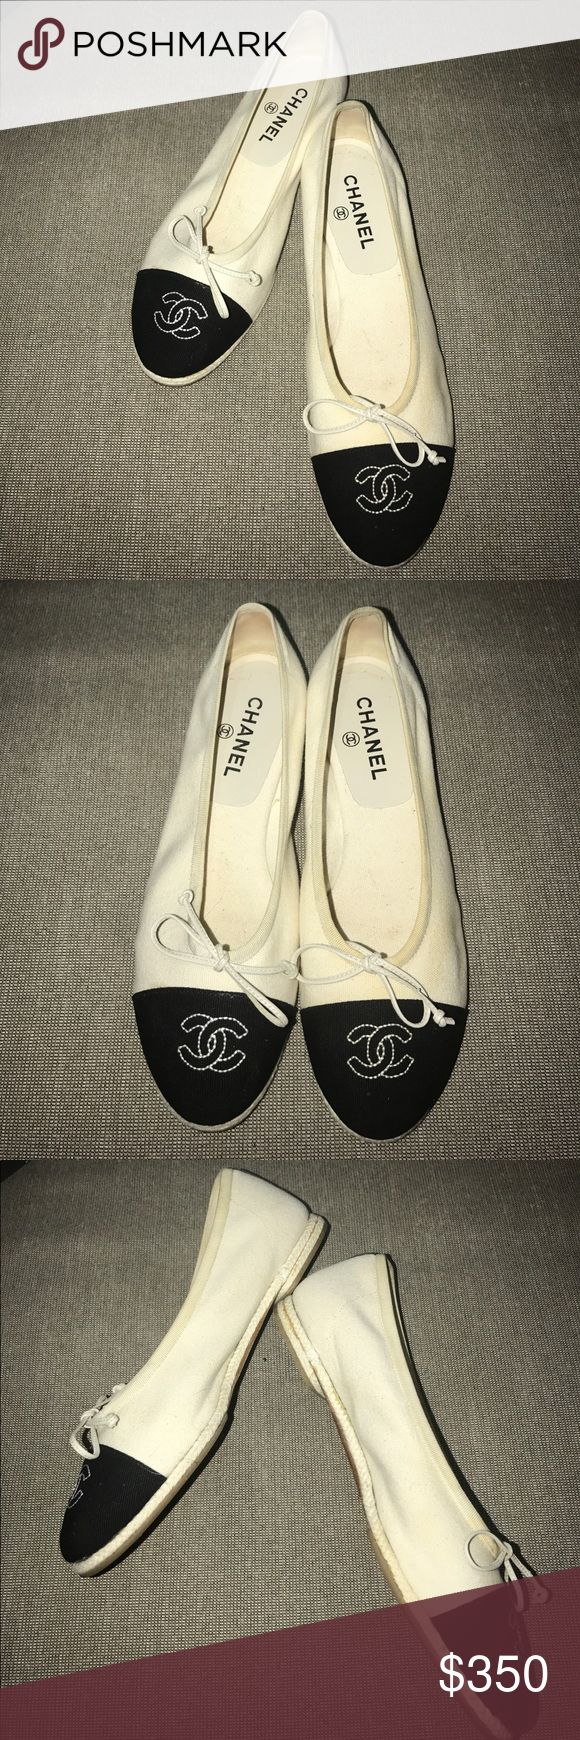 💯% Authentic CHANEL flats Preowned Chanel flats. The only flaw is a bit of discoloration on the outside of the left shoe. Oddly, this issue is only really visible under a flash. In reg daylight, you can't see it too well. These shoes are a re-posh. I bought 2 pair of CHANEL flats & learned the hard way that CHANEL runs very small. 39 usually fits my size 8 foot, but in CHANEL I need a 39.5 ❌PP ❌Taking transactions off posh. 🎥I video record all sales from packaging to shipping, so we are…